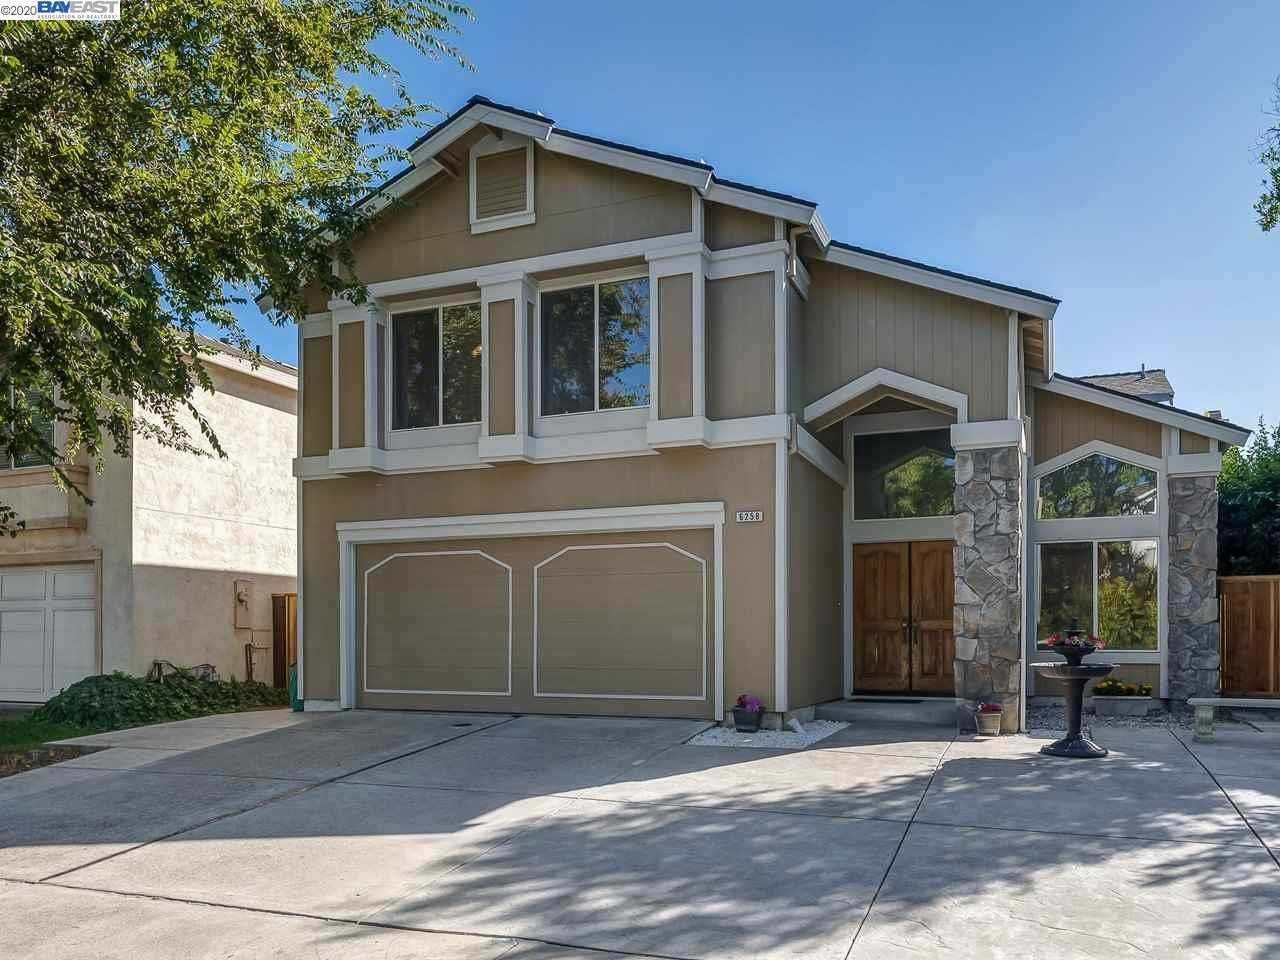 $1,264,900 - 4Br/3Ba -  for Sale in Ponderosa, Pleasanton